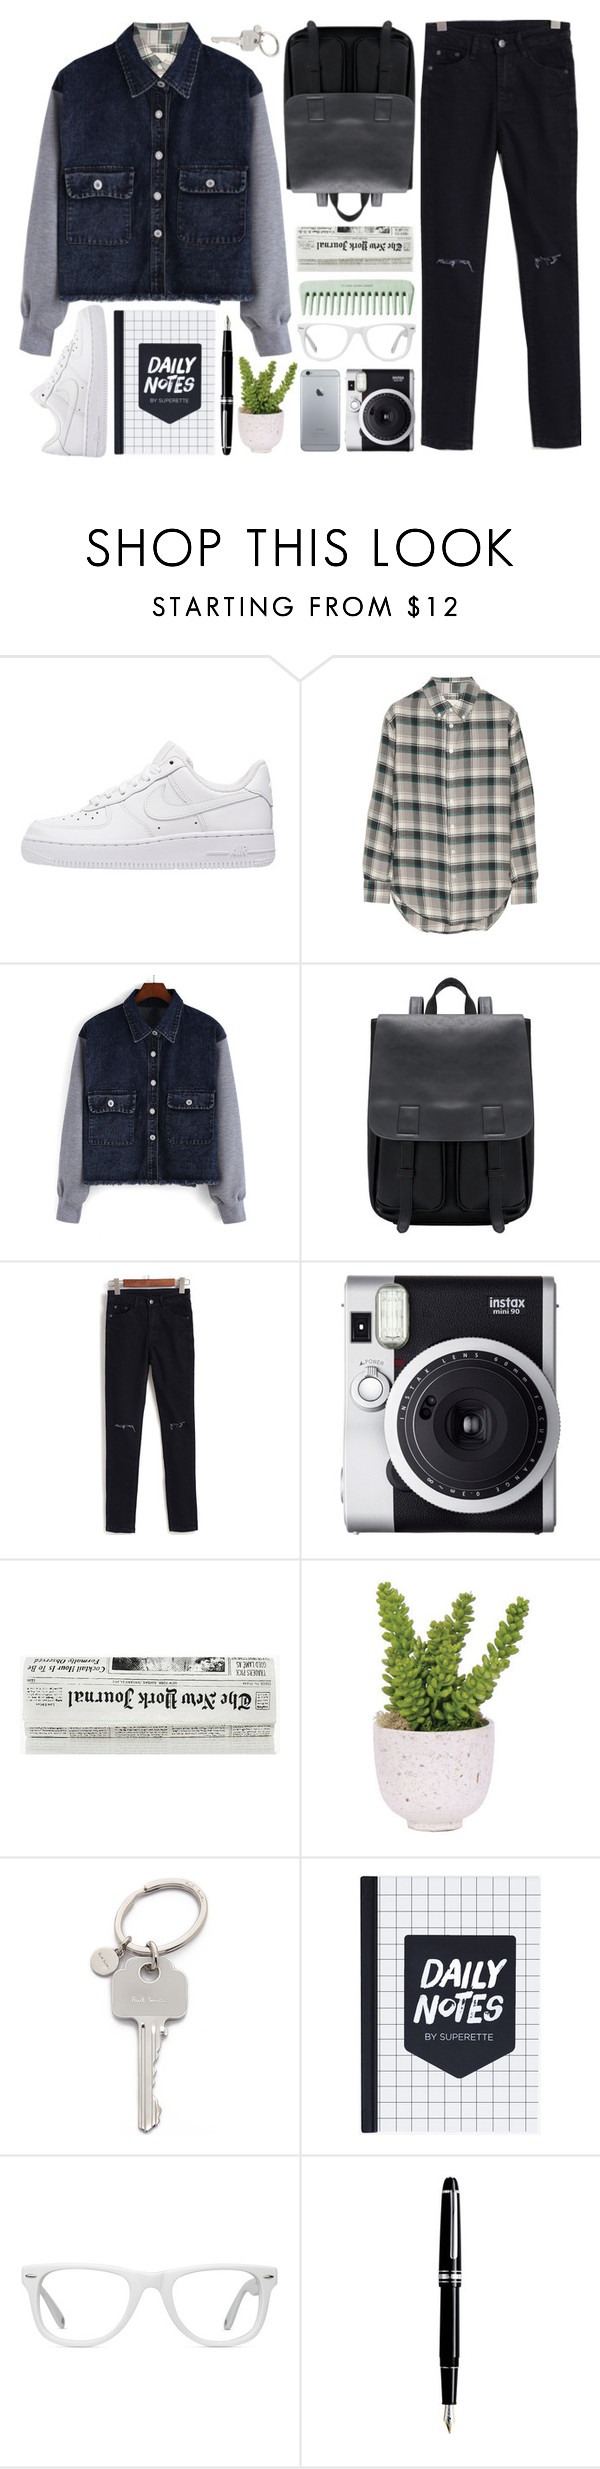 """Hidden"" by alexandra-provenzano ❤ liked on Polyvore featuring NIKE, Band of Outsiders, Fuji, Lux-Art Silks, Paul Smith, Muse and Montblanc"